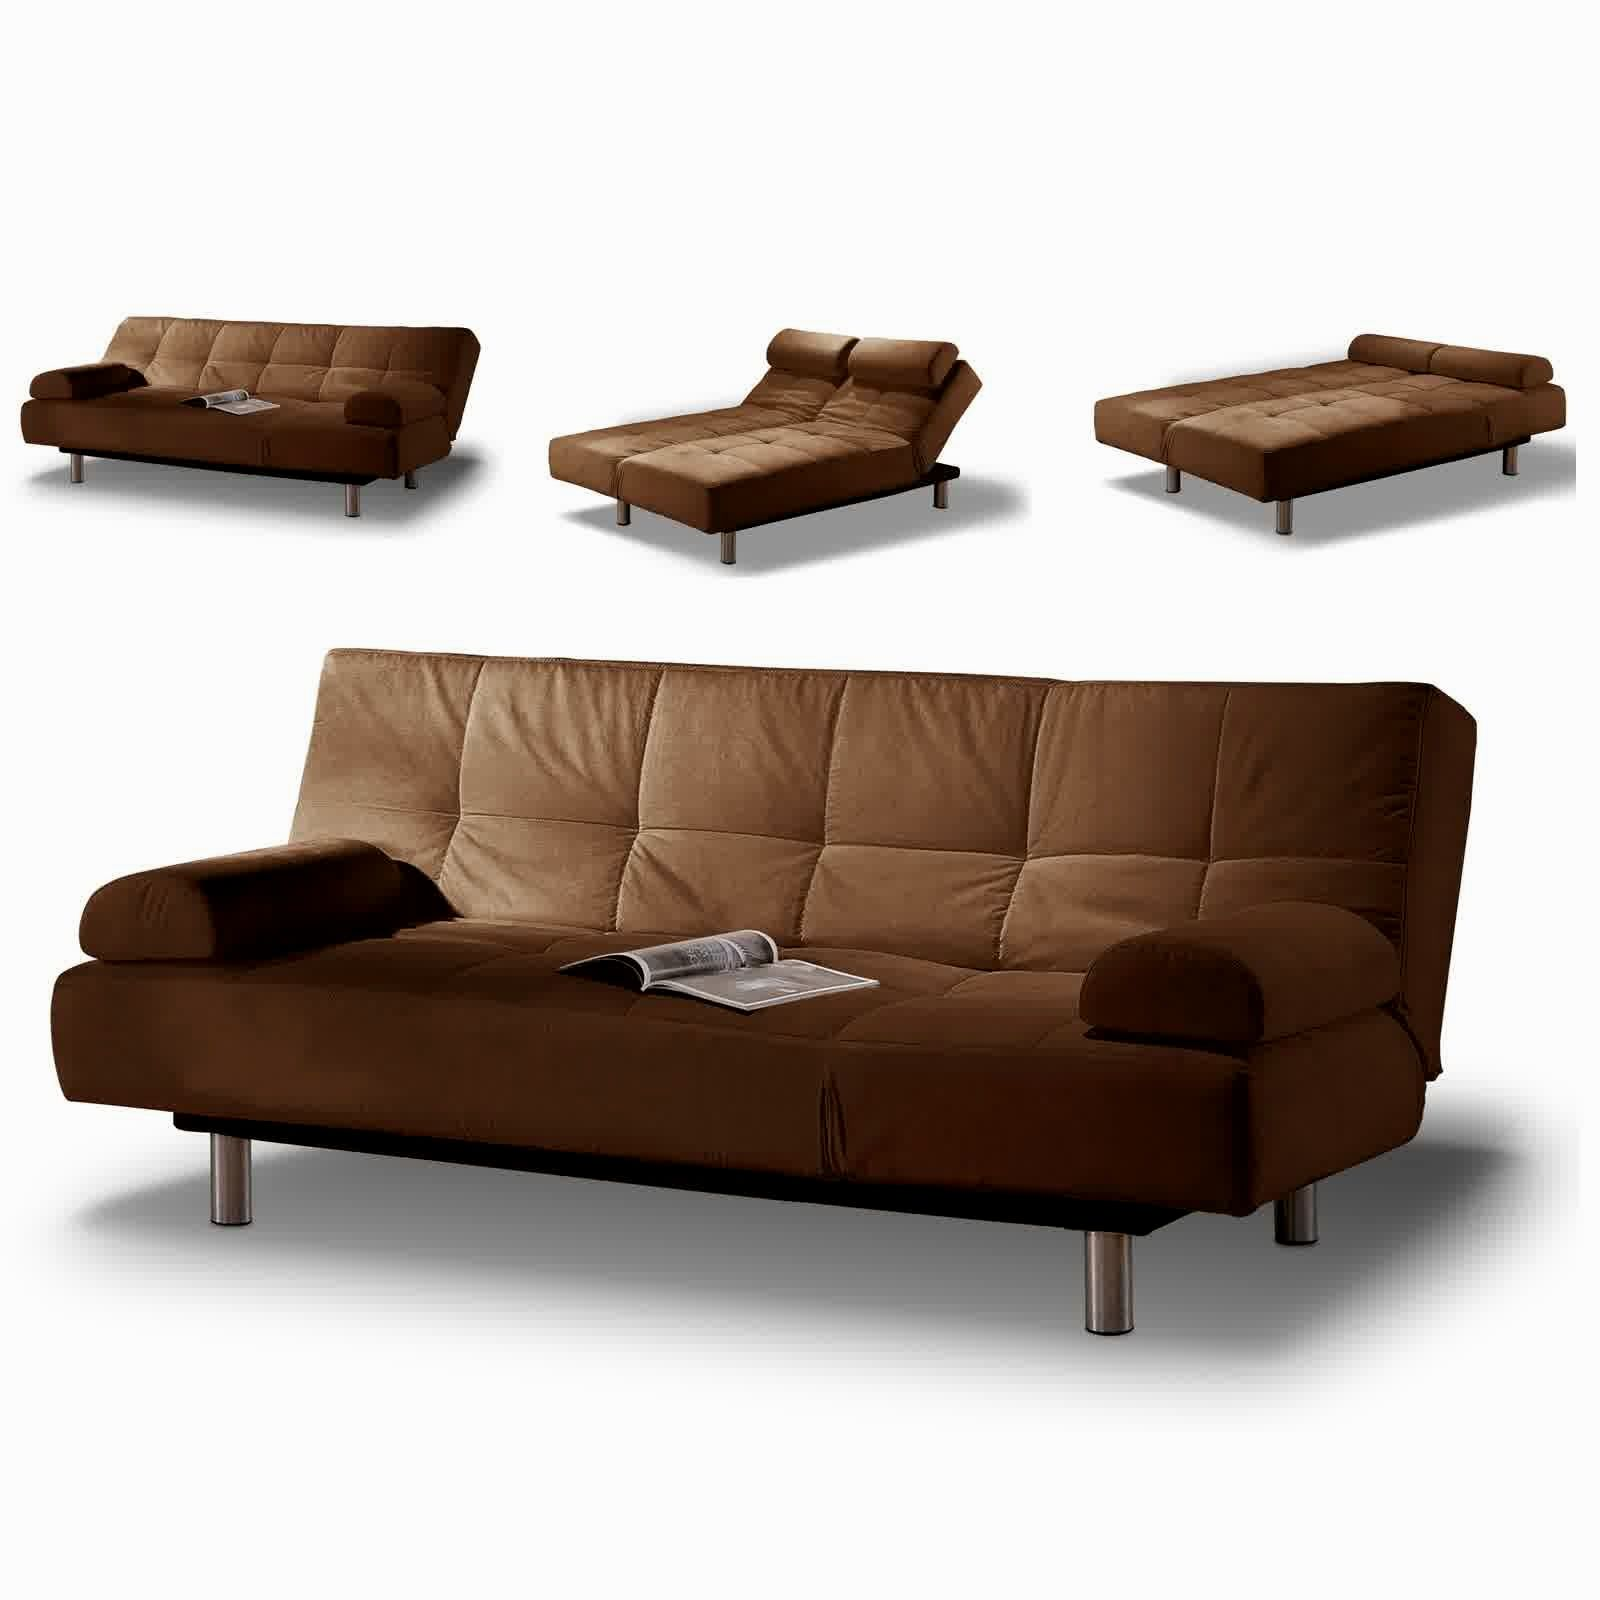 amazing convertible sofa bed design-Amazing Convertible sofa Bed Architecture